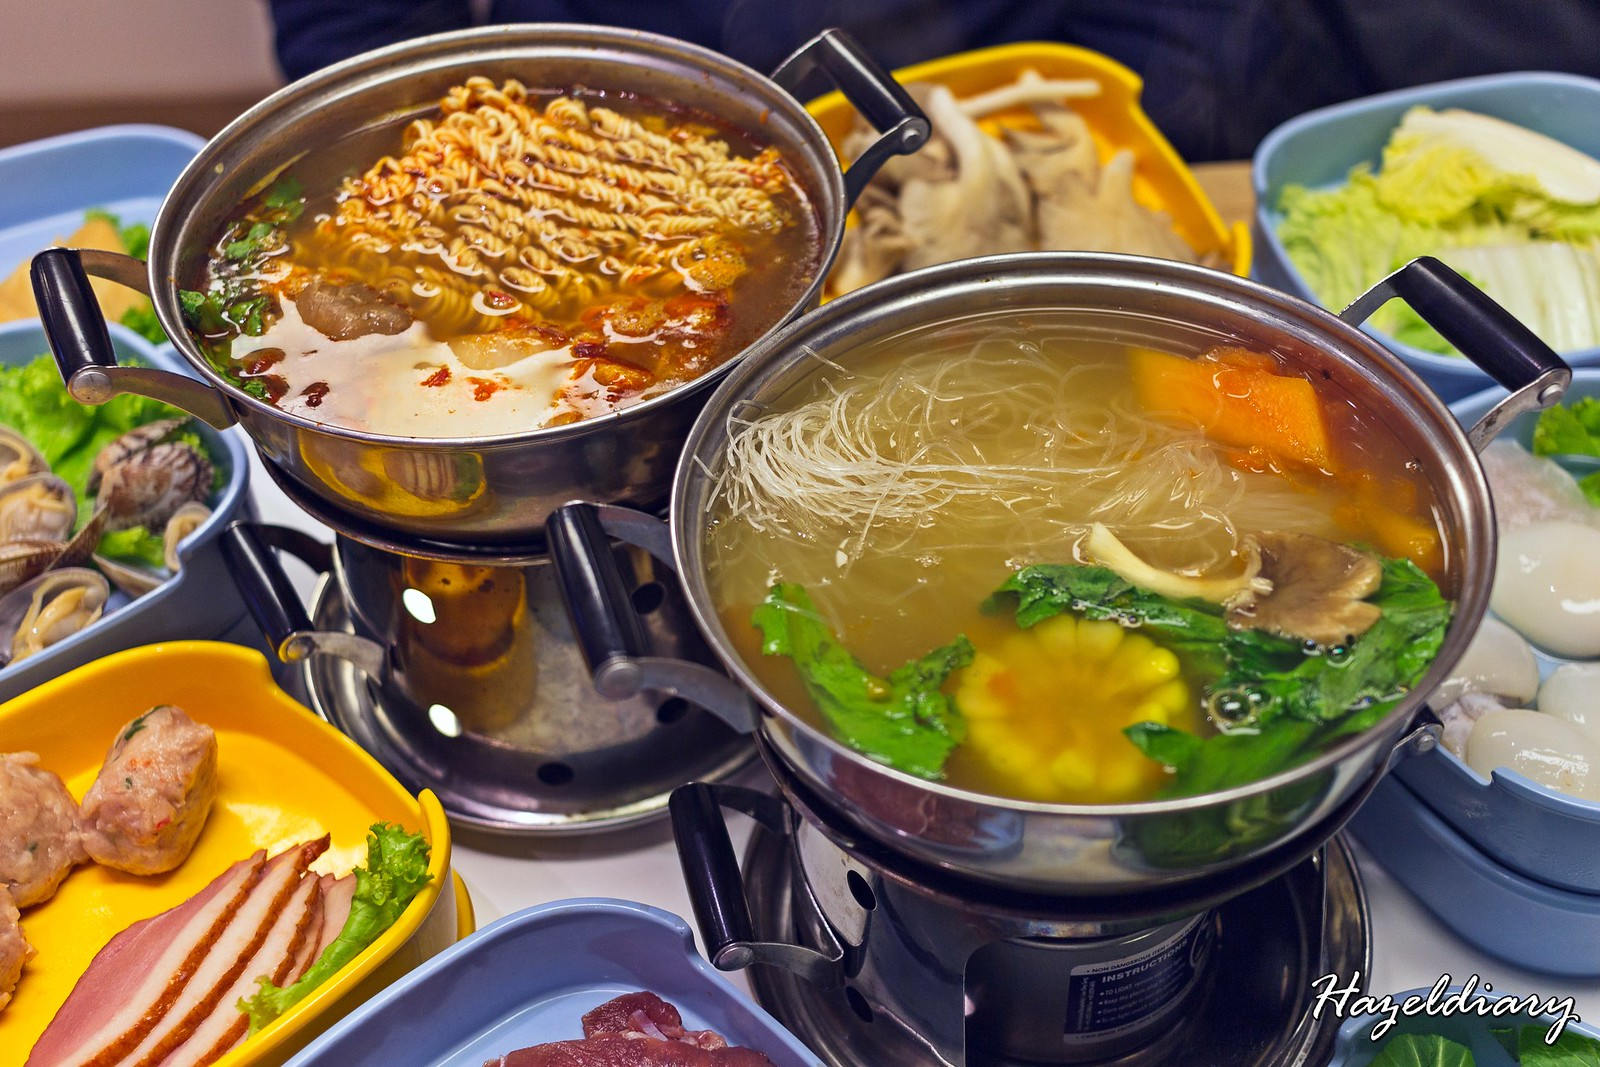 Chill Gen by Xin Wang Hong Kong Cafe-Buffet